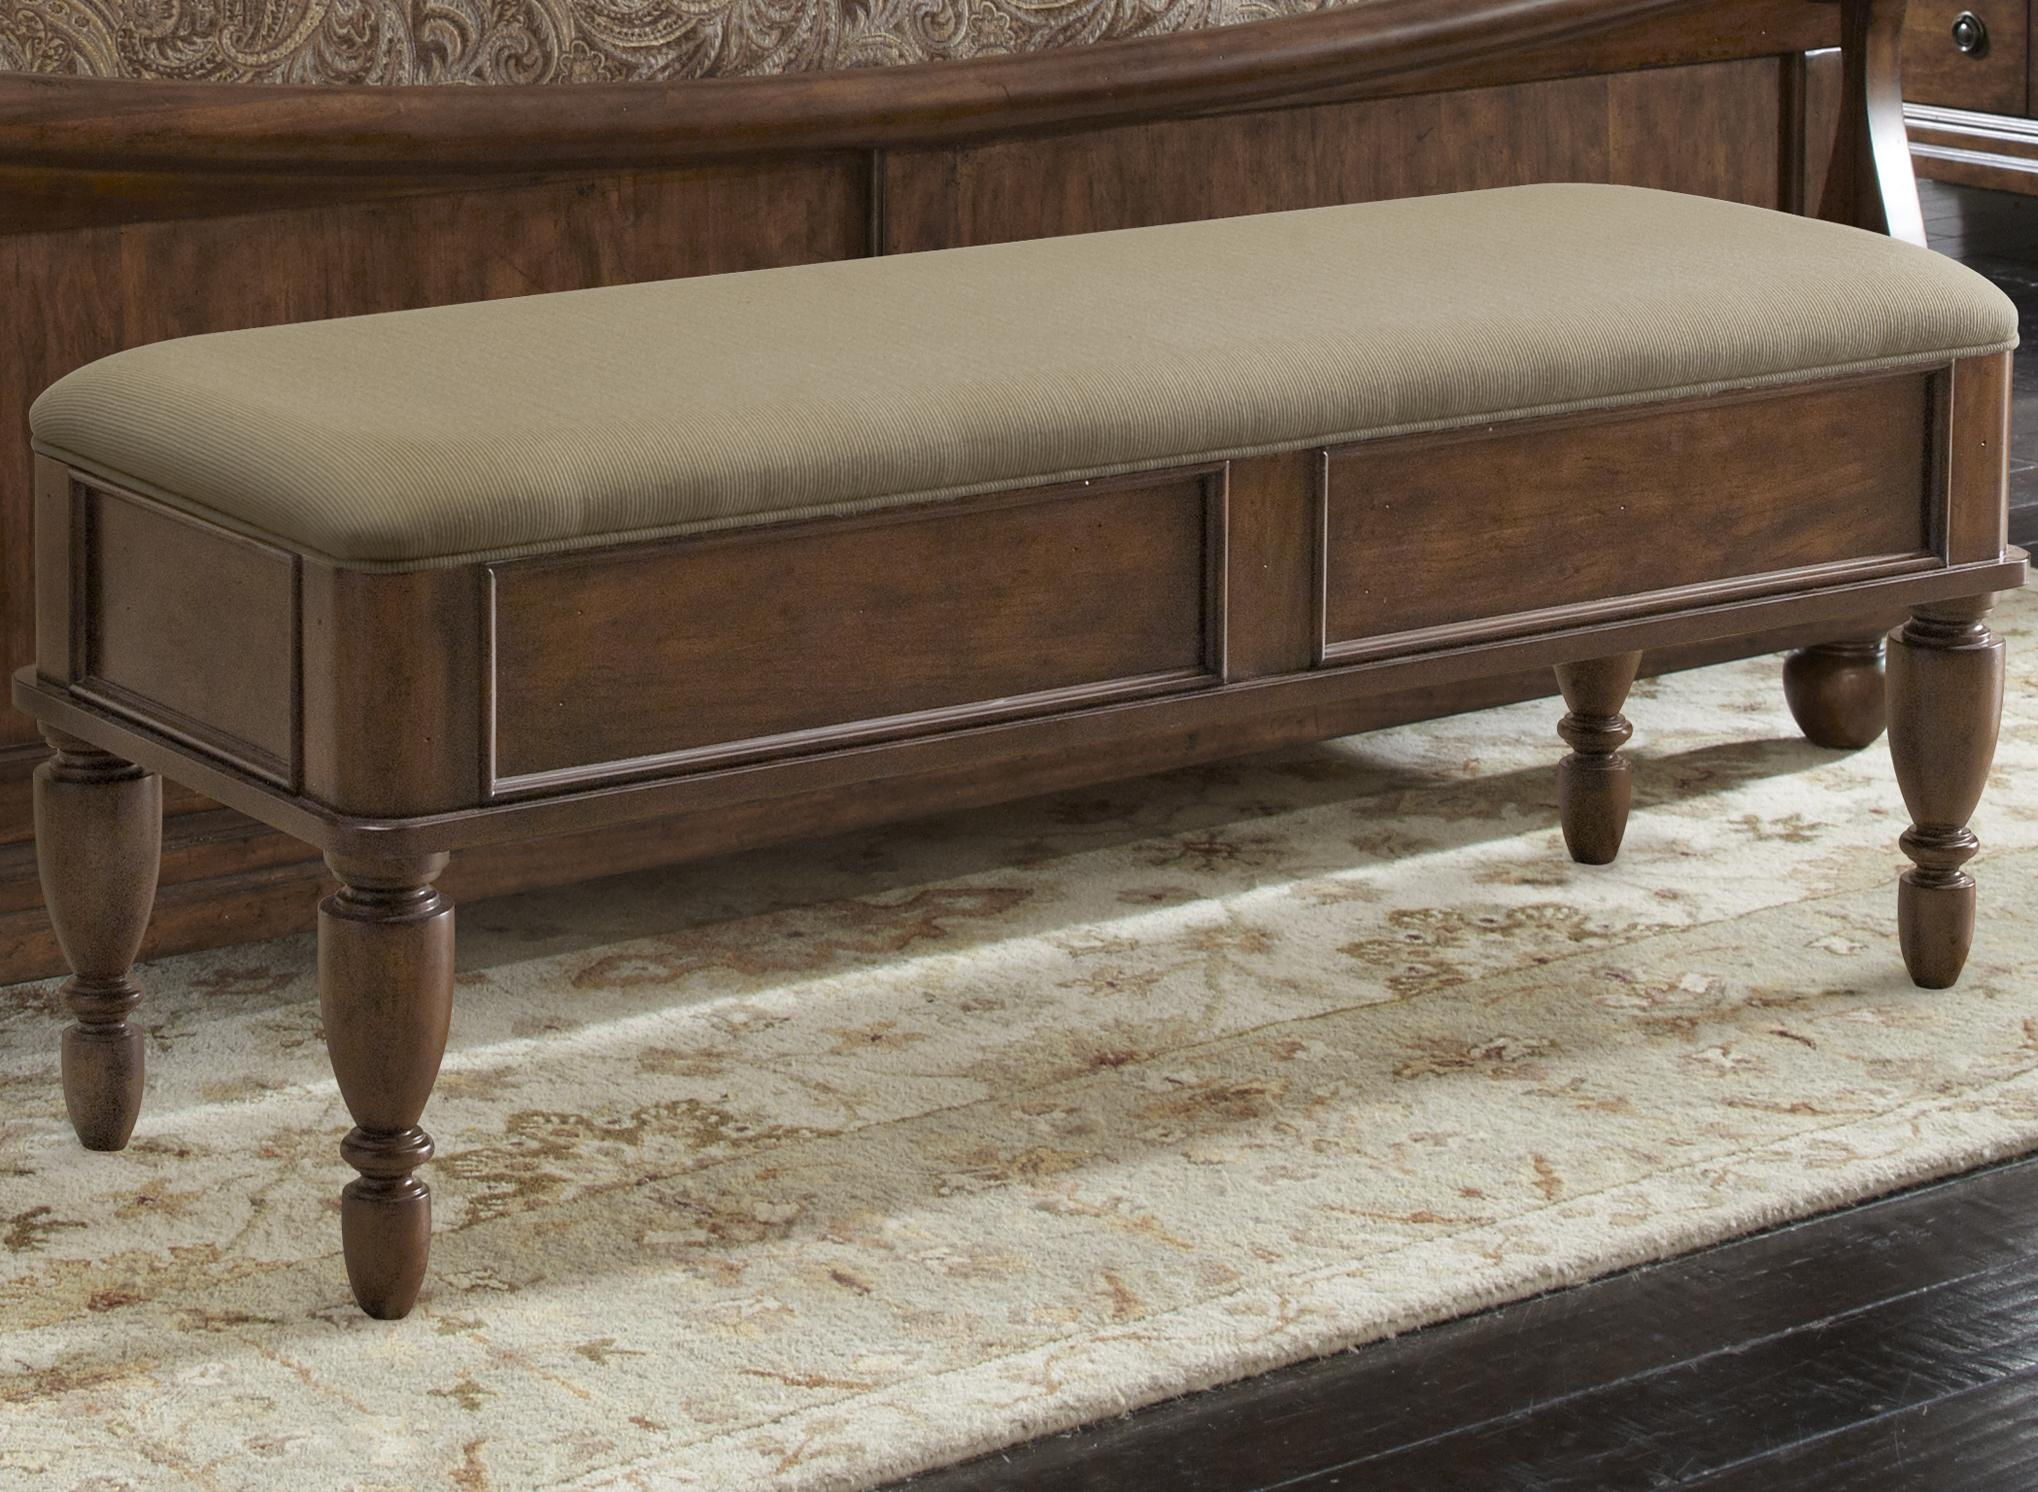 Rustic Traditions Bed Bench by Liberty Furniture at Lapeer Furniture & Mattress Center